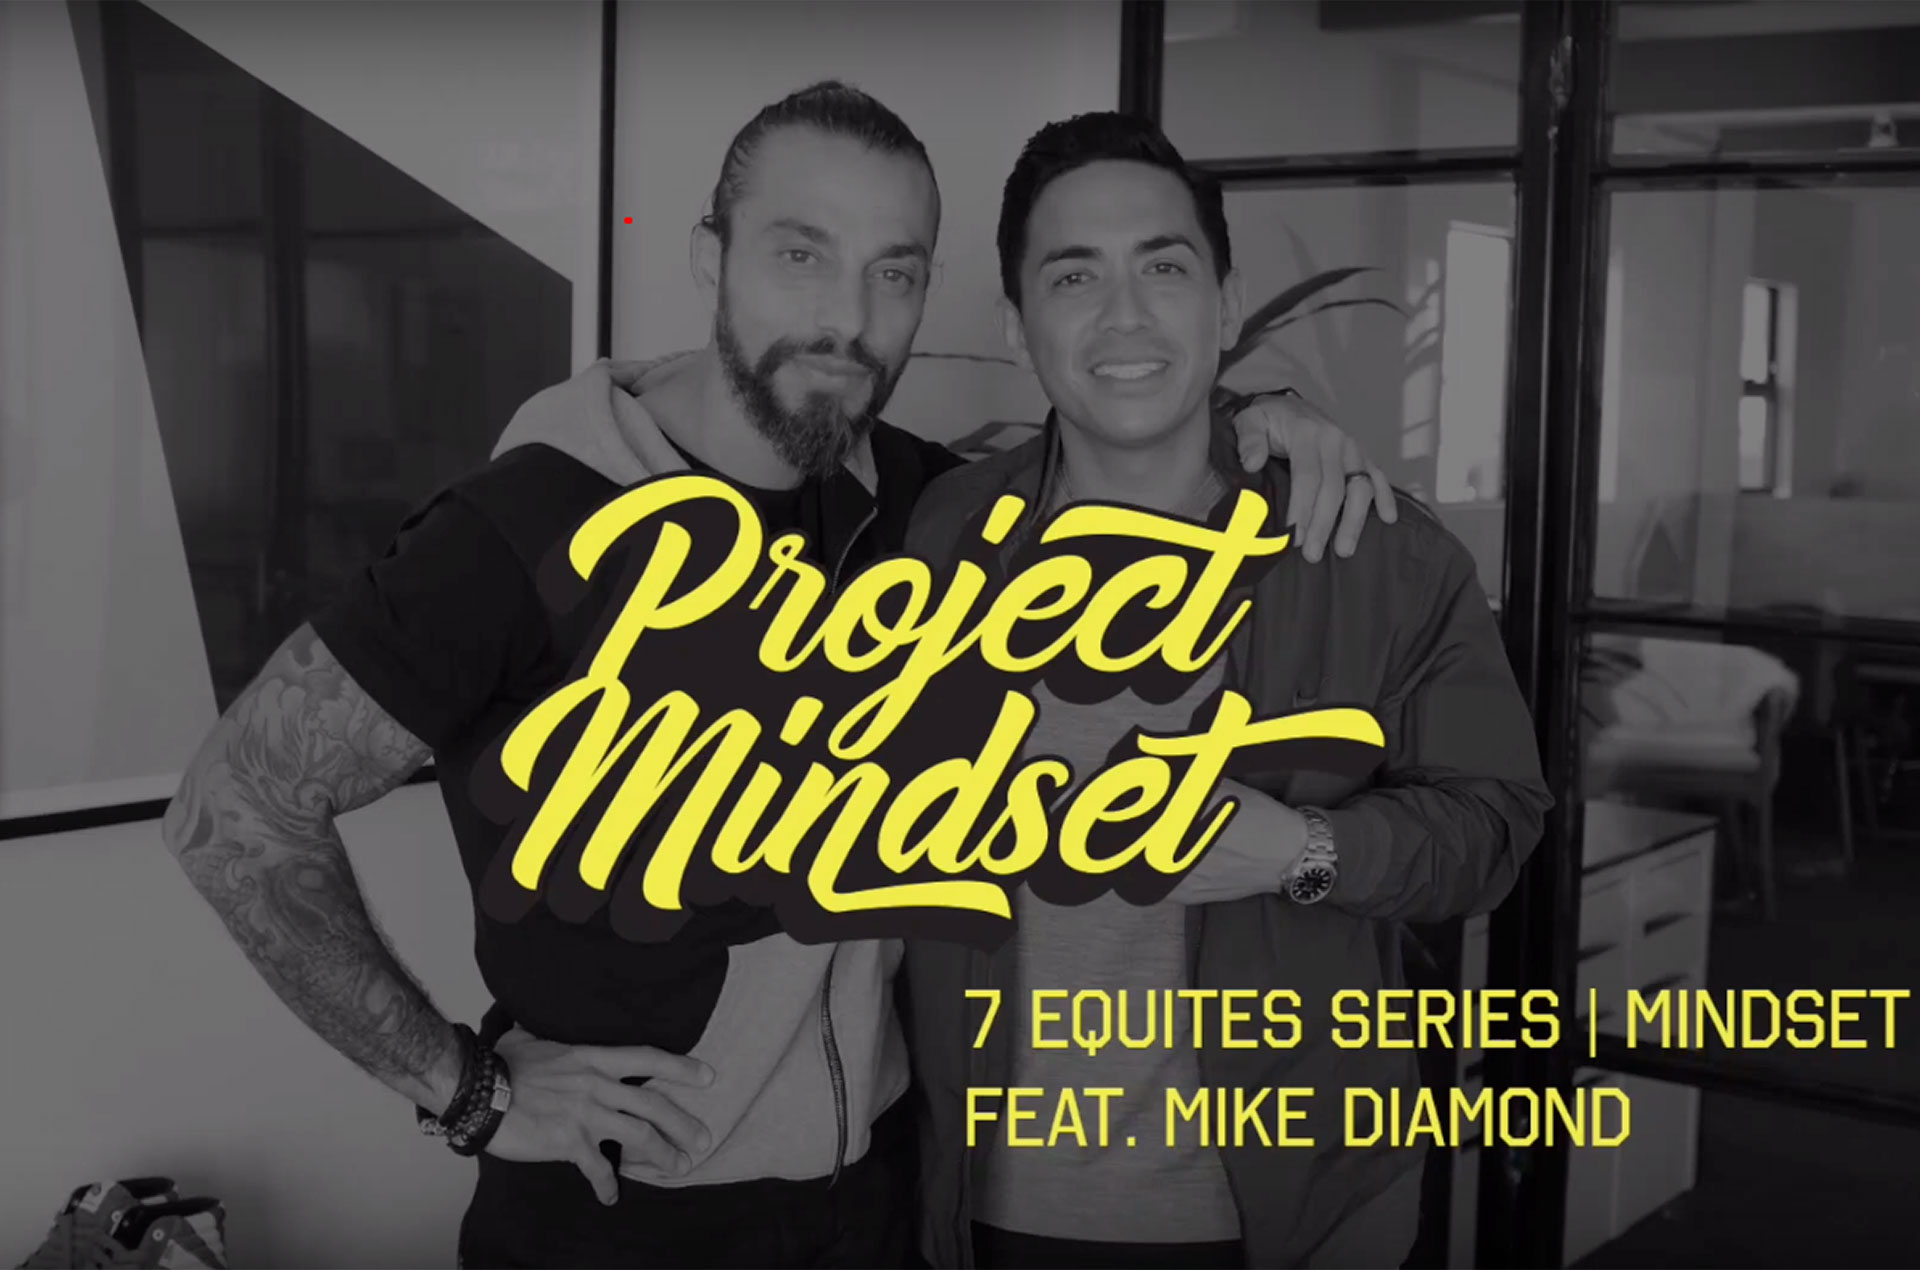 7 Equities Mindset Featuring Mike Diamond